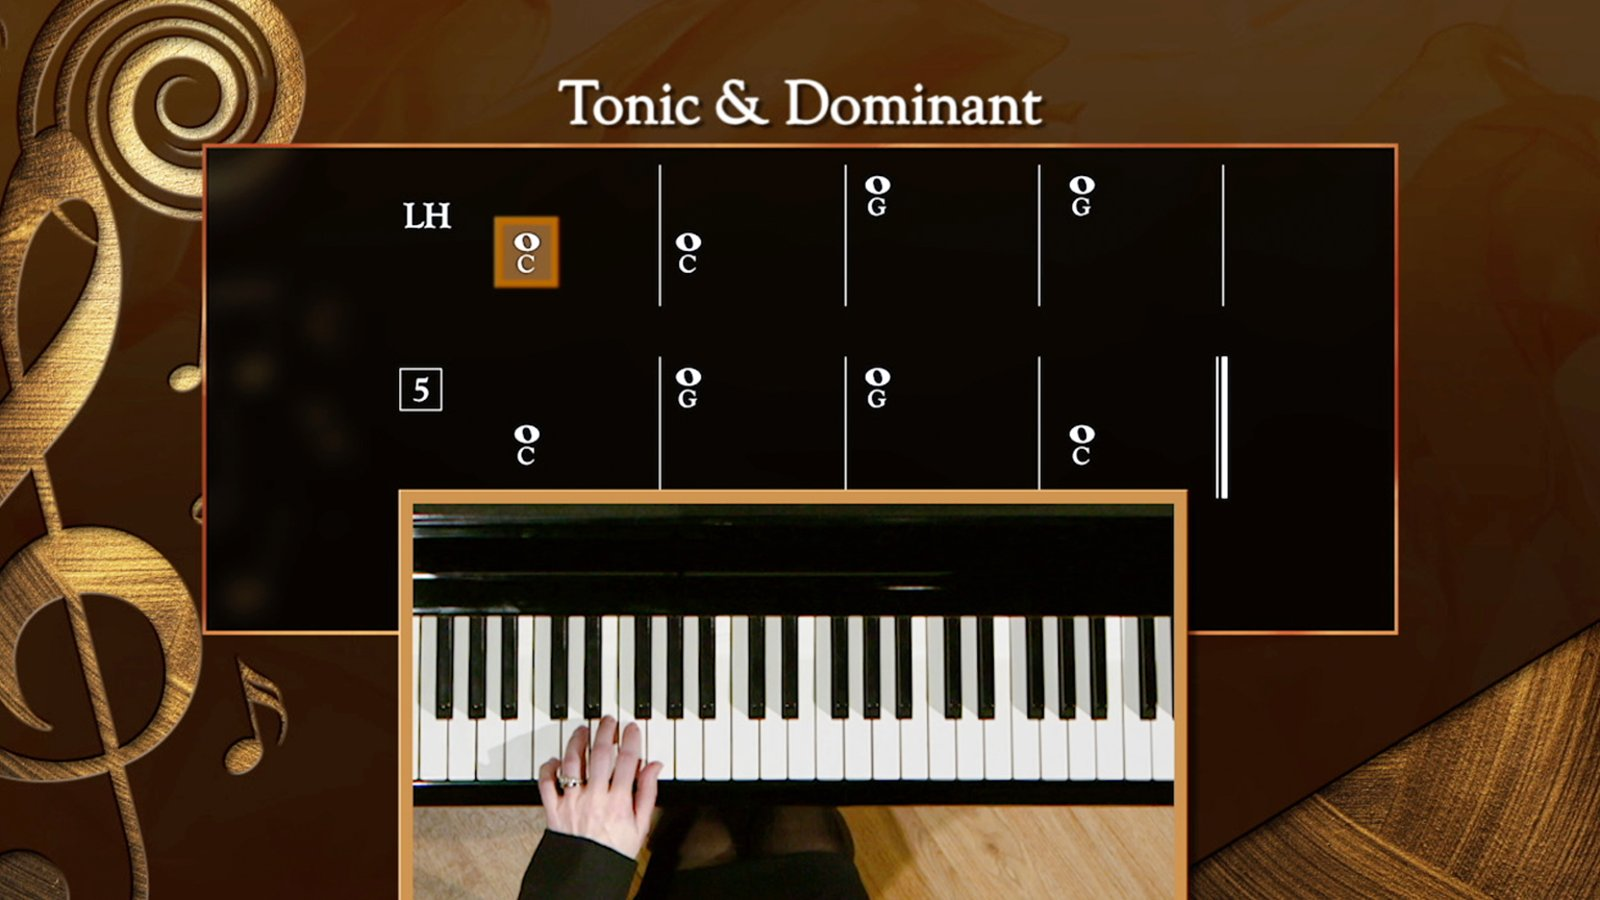 Tonic and Dominant Harmony